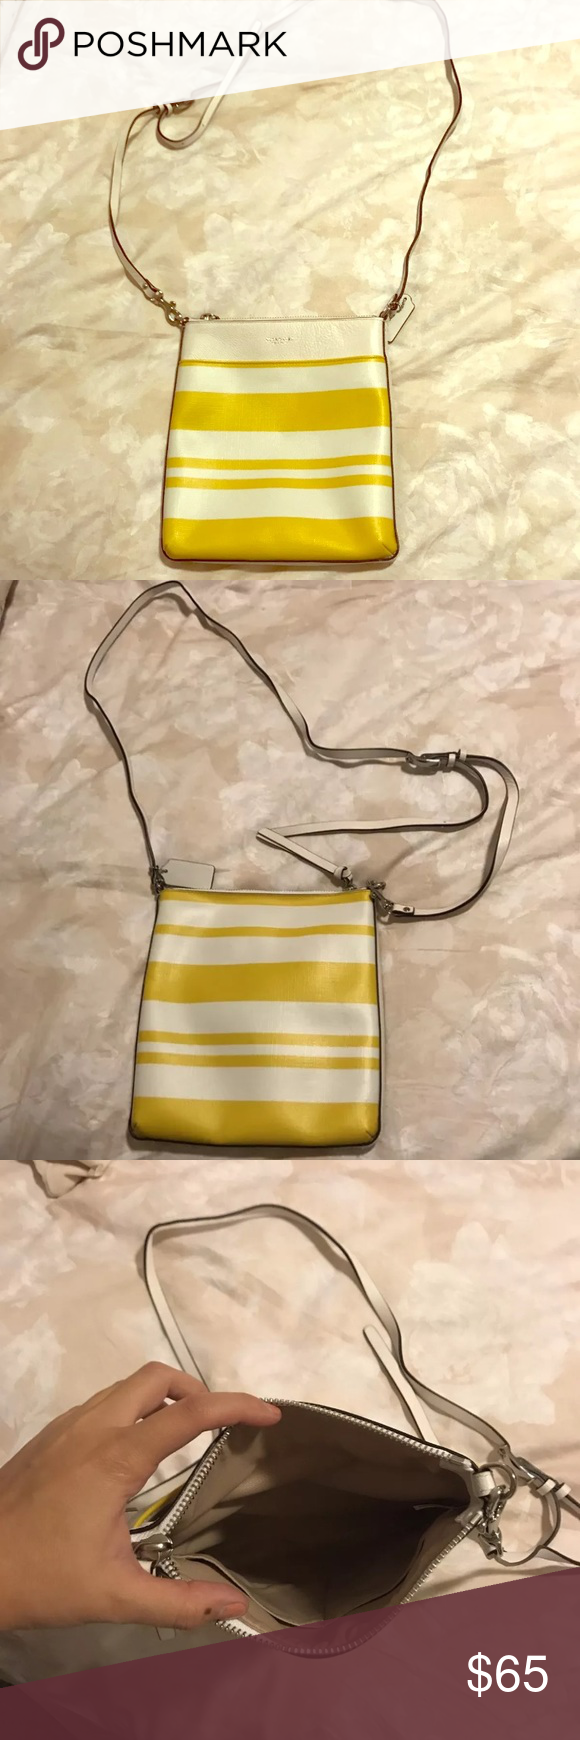 b9628ce382 Yellow and White Small Striped Coach Crossbody This coach crossbody was  given to me as a Christmas present and I ve never worn it.